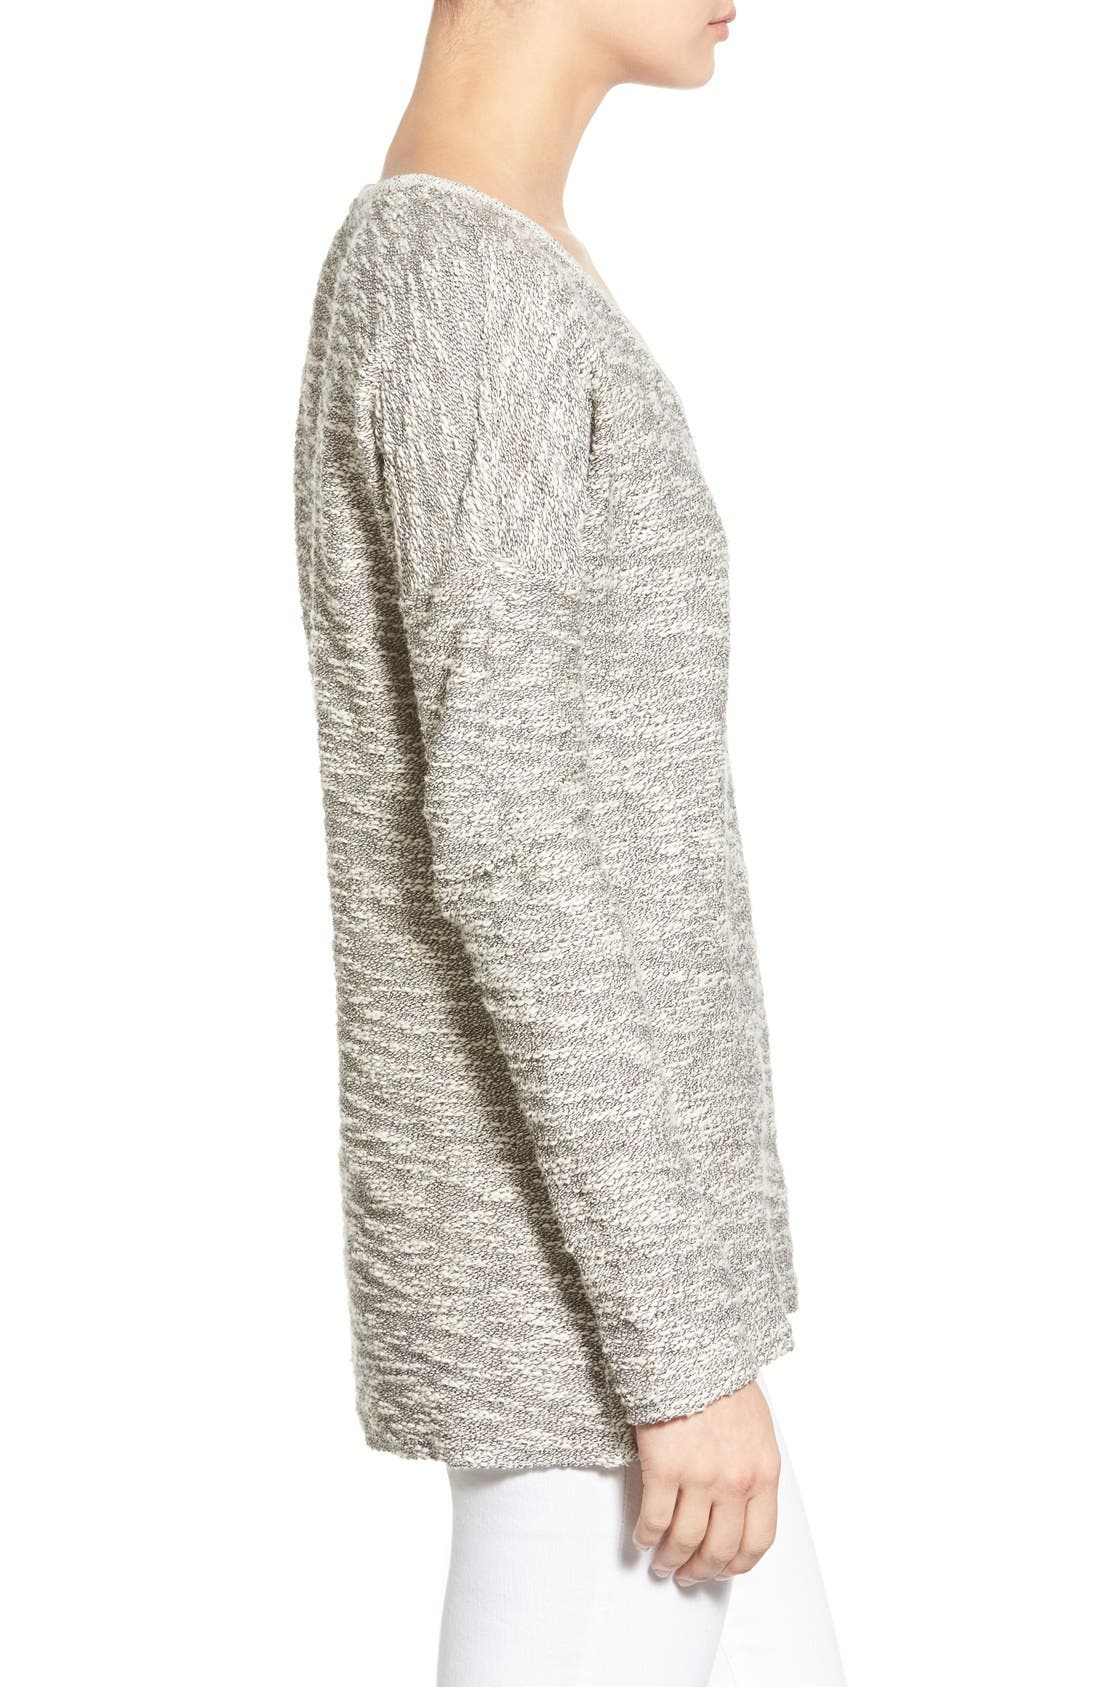 'Martine' Slub Cotton Sweater,                             Alternate thumbnail 2, color,                             001